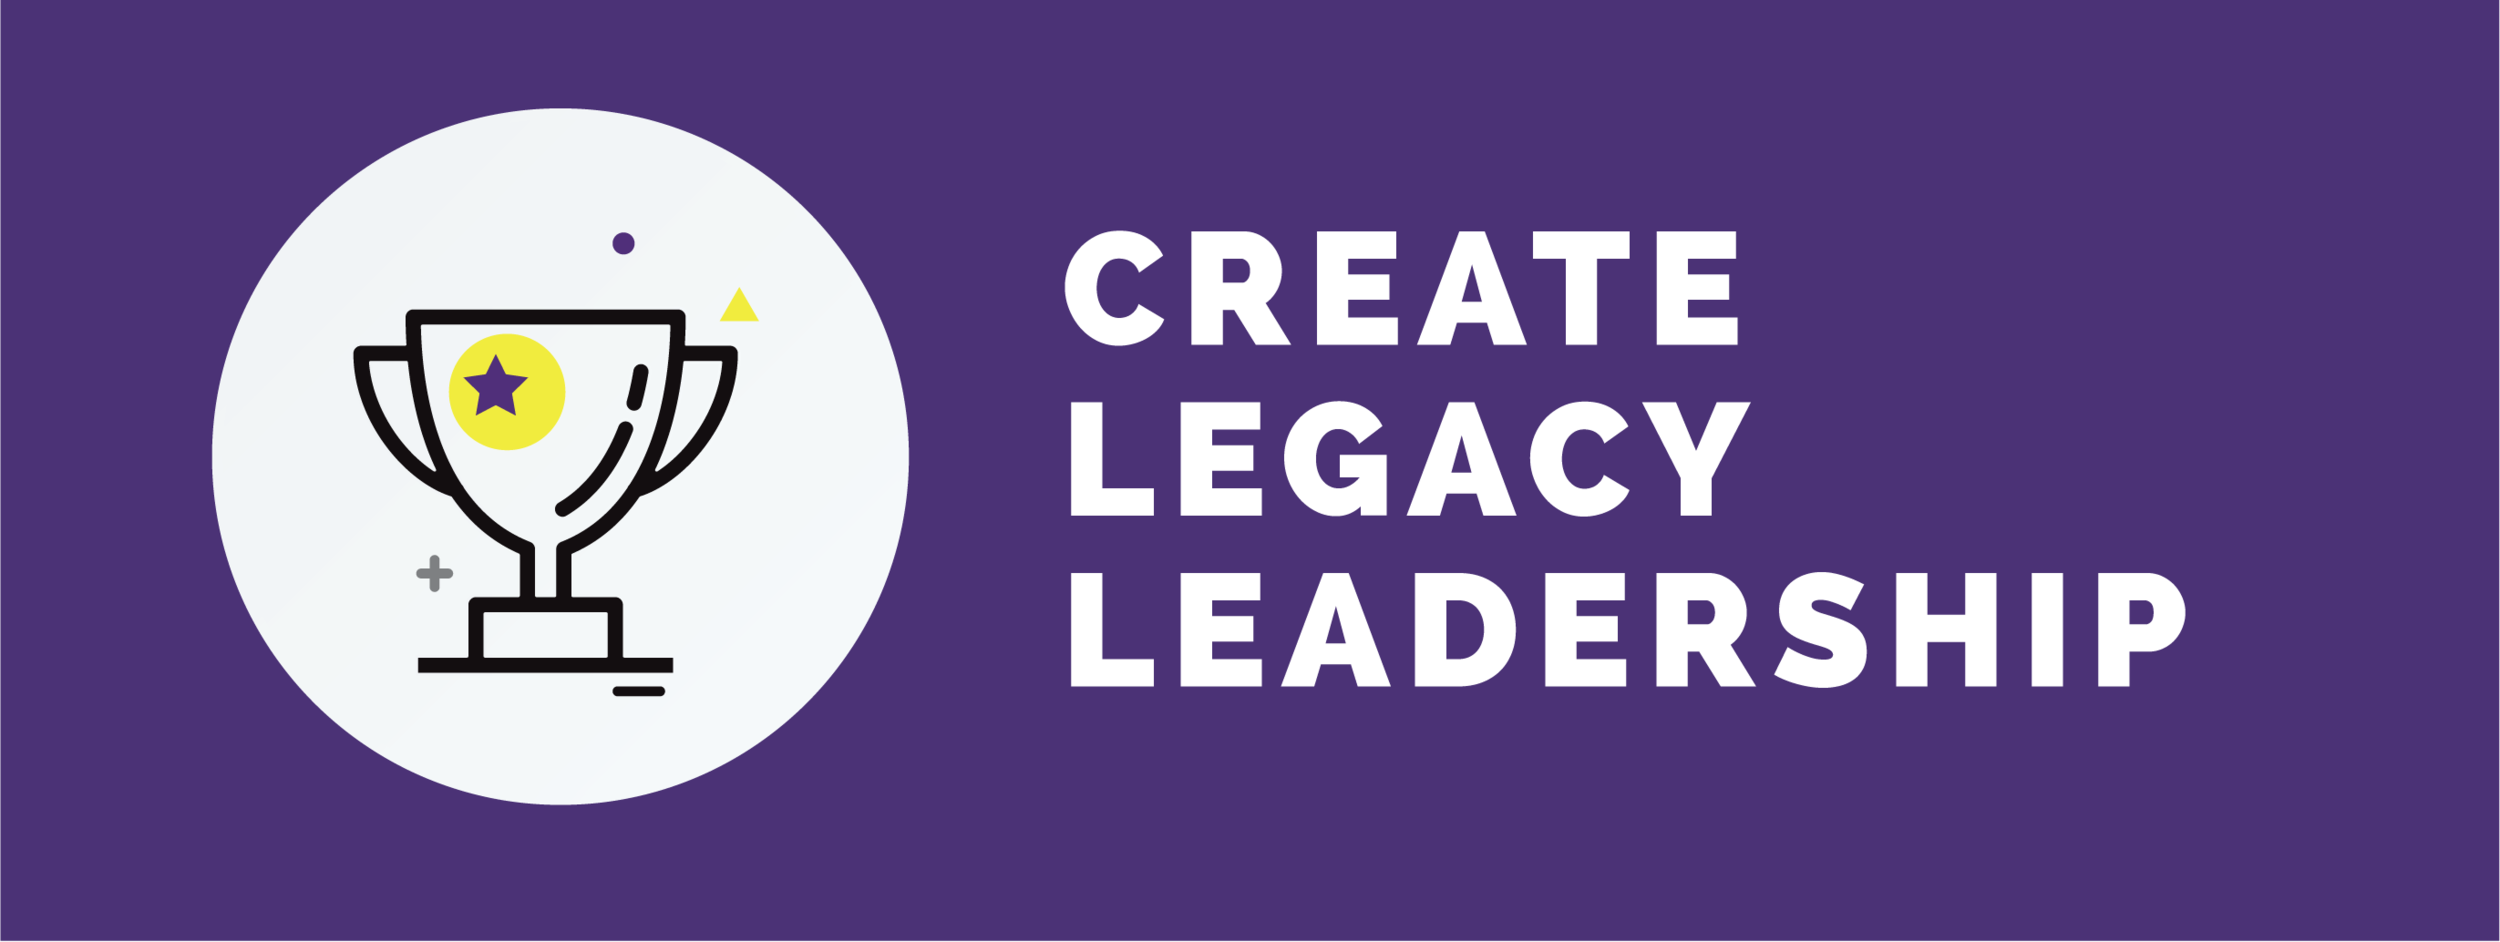 4. CREATE LEGACY LEADERSHIP.png